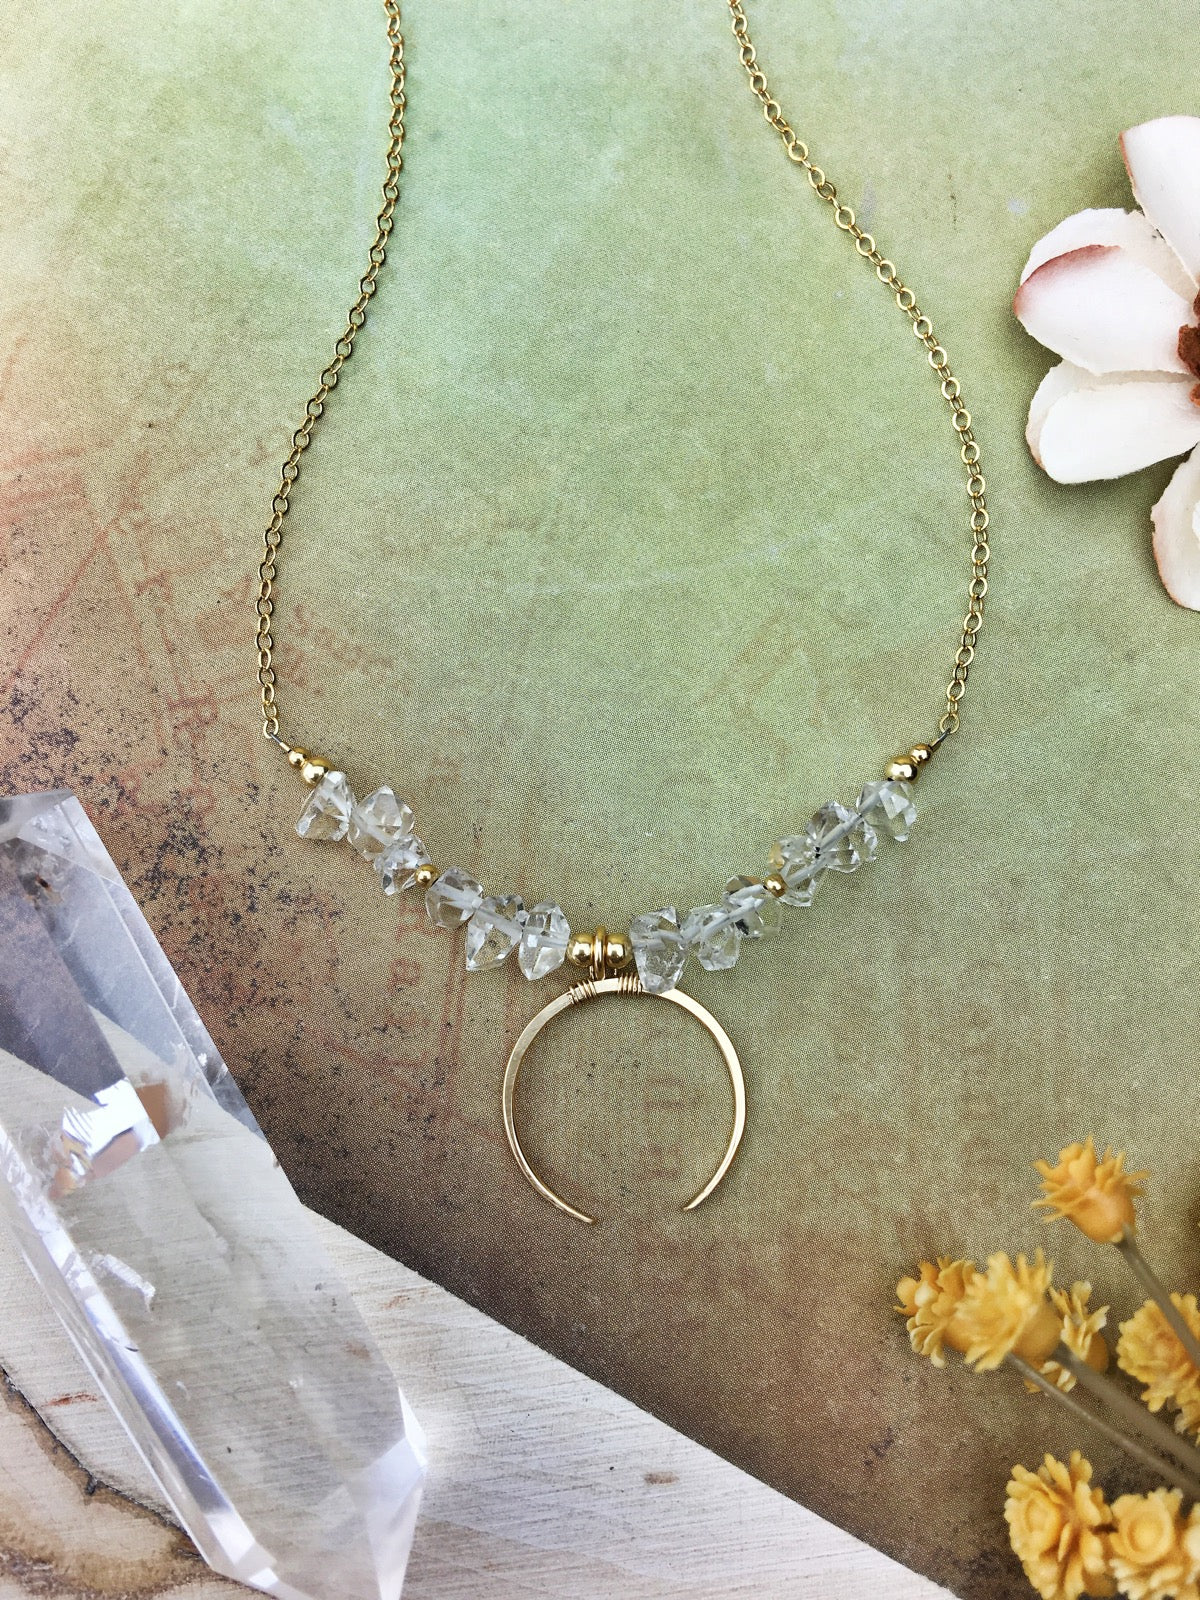 Berzerker Necklace - Herkimer Diamond 14k Gold Fill Crescent Chain